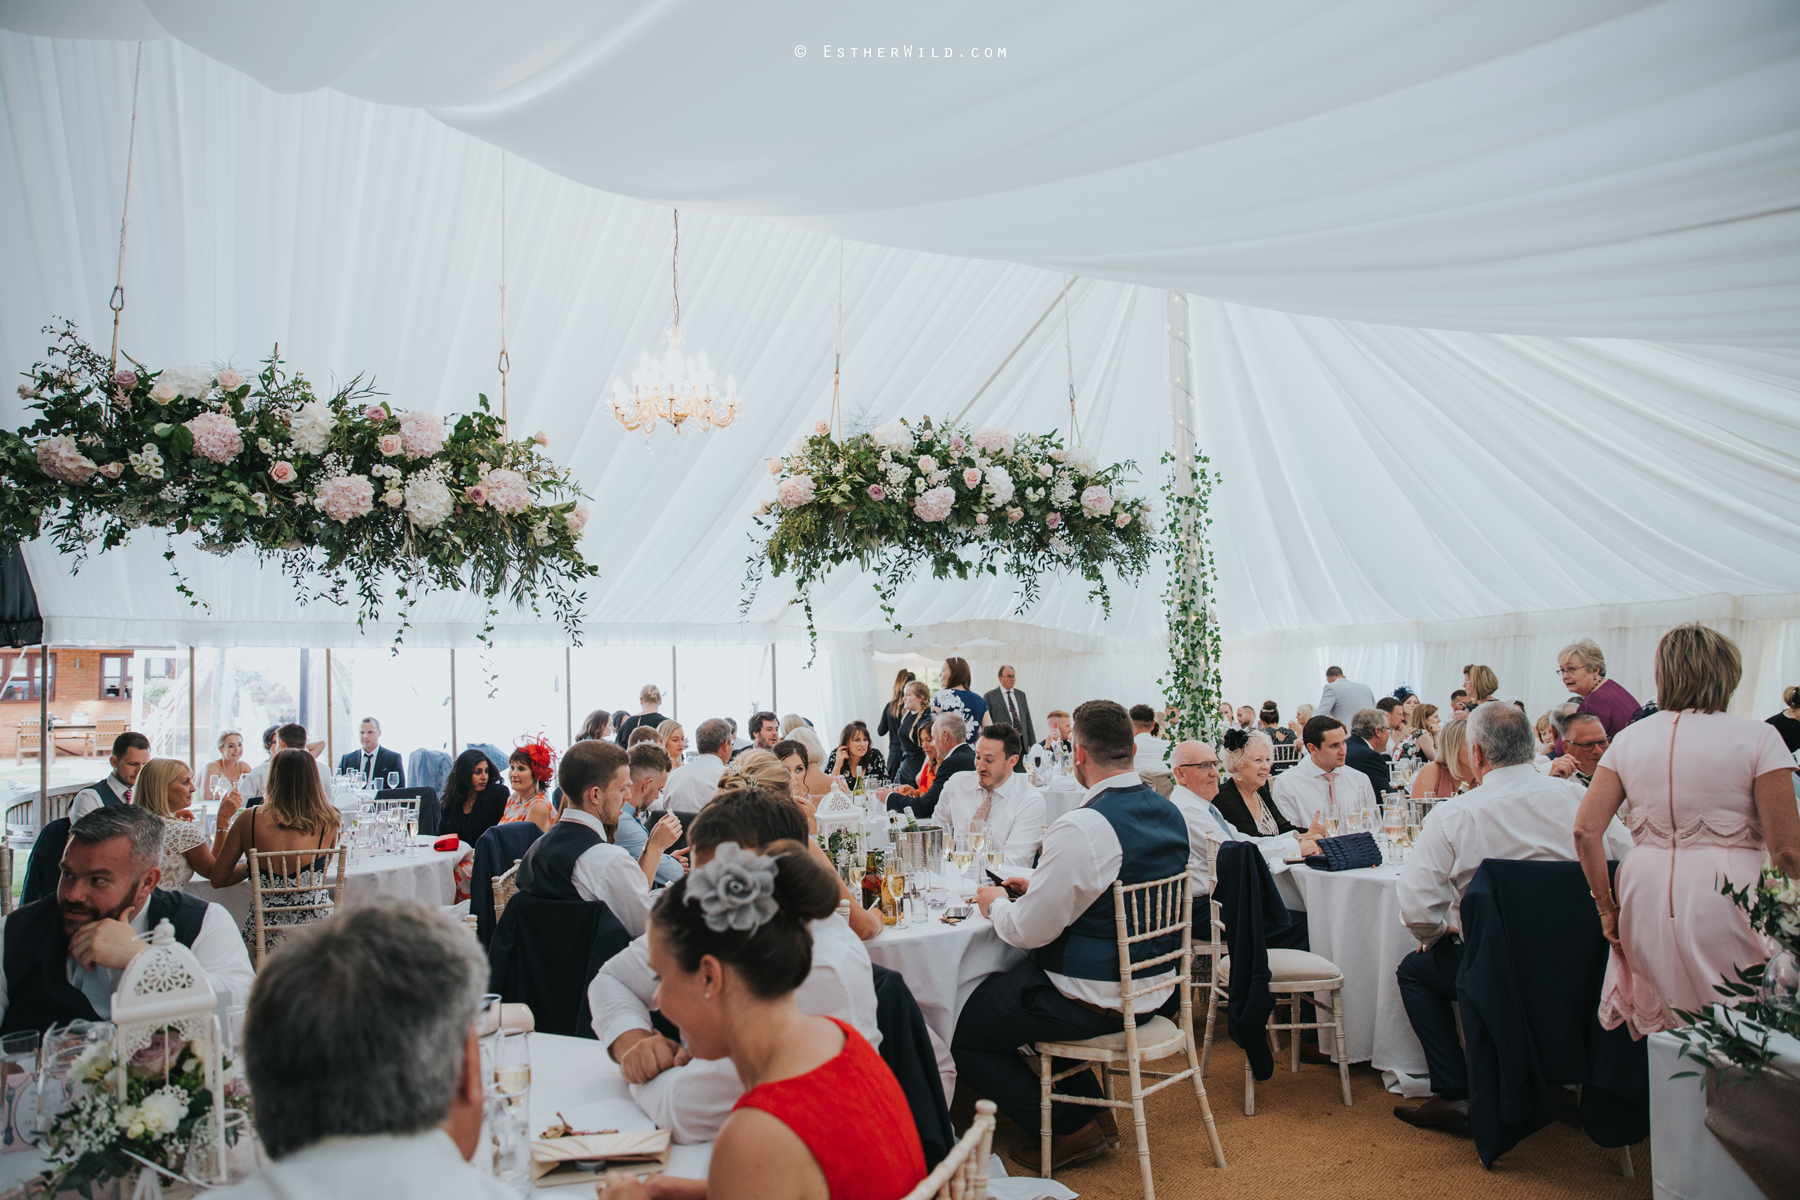 Wootton_Wedding_Copyright_Esther_Wild_Photographer_IMG_2151.jpg